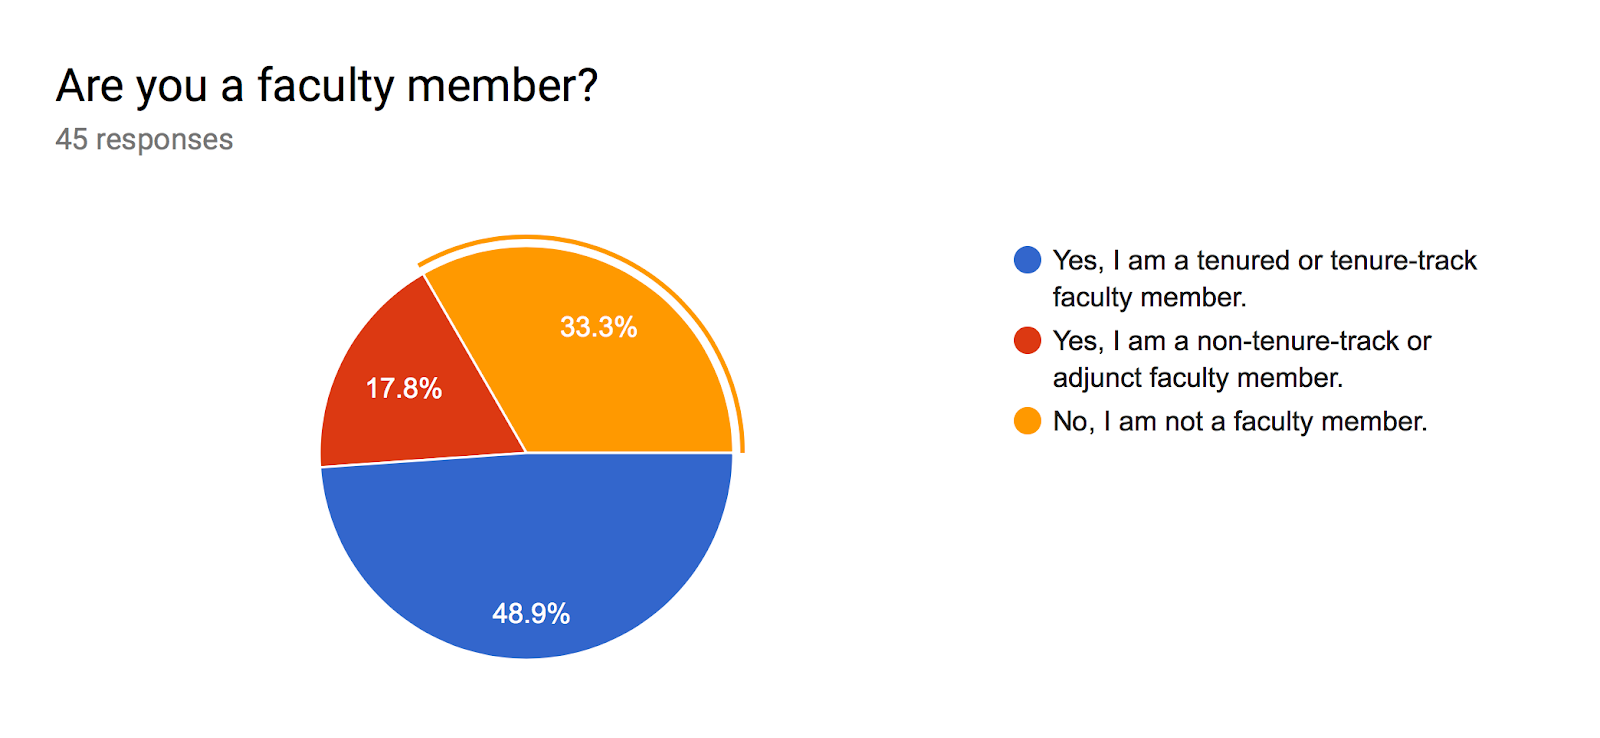 Forms response chart. Question title: Are you a faculty member?. Number of responses: 45 responses.